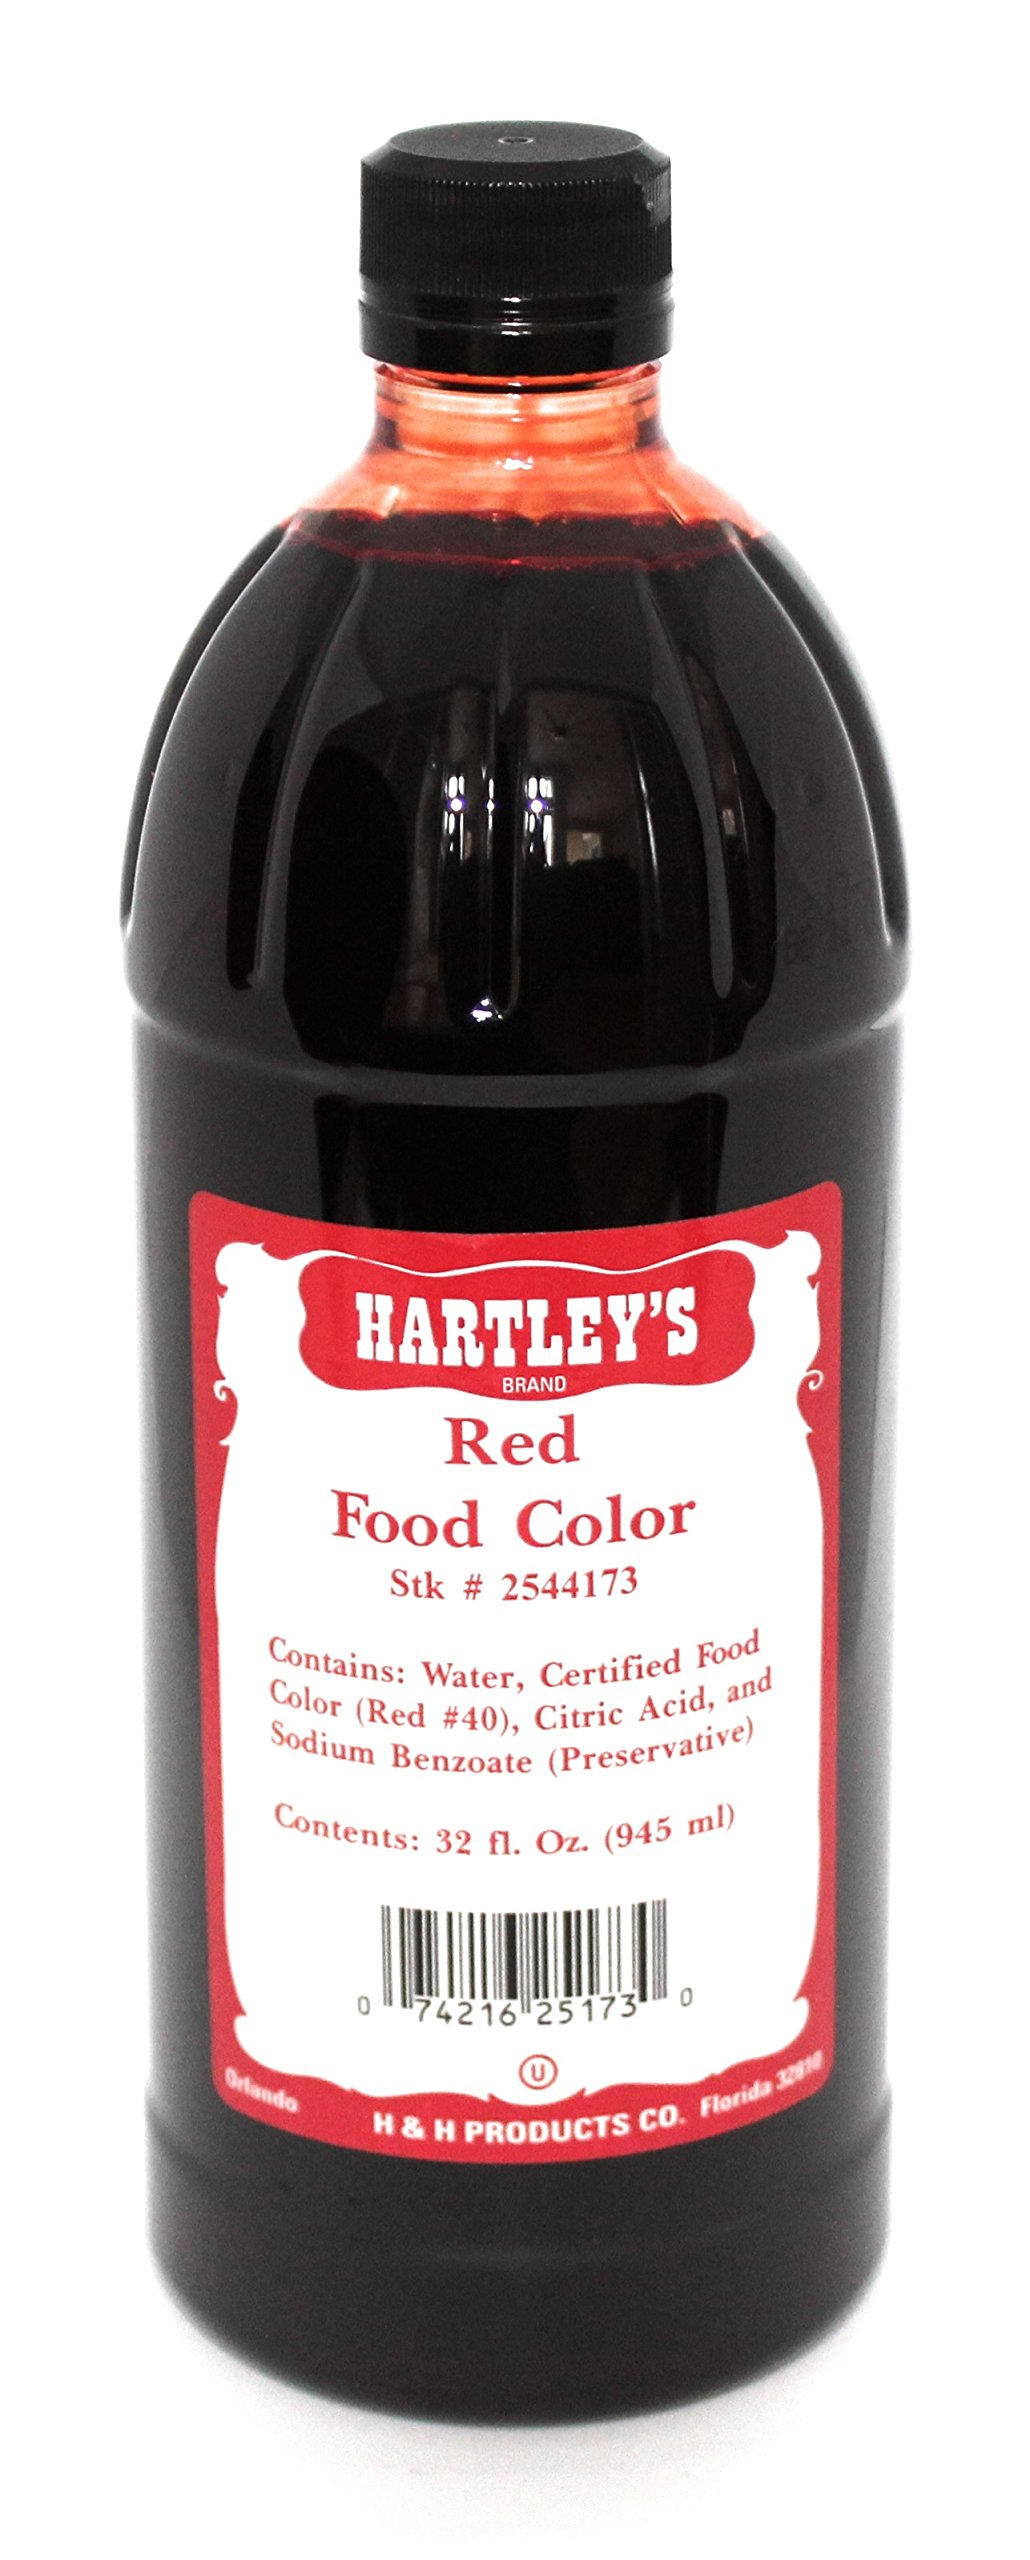 Hartleys Red Food Coloring Commercial Grade Professional Kitchen Liquid Color 32 Oz ✡ OU Kosher